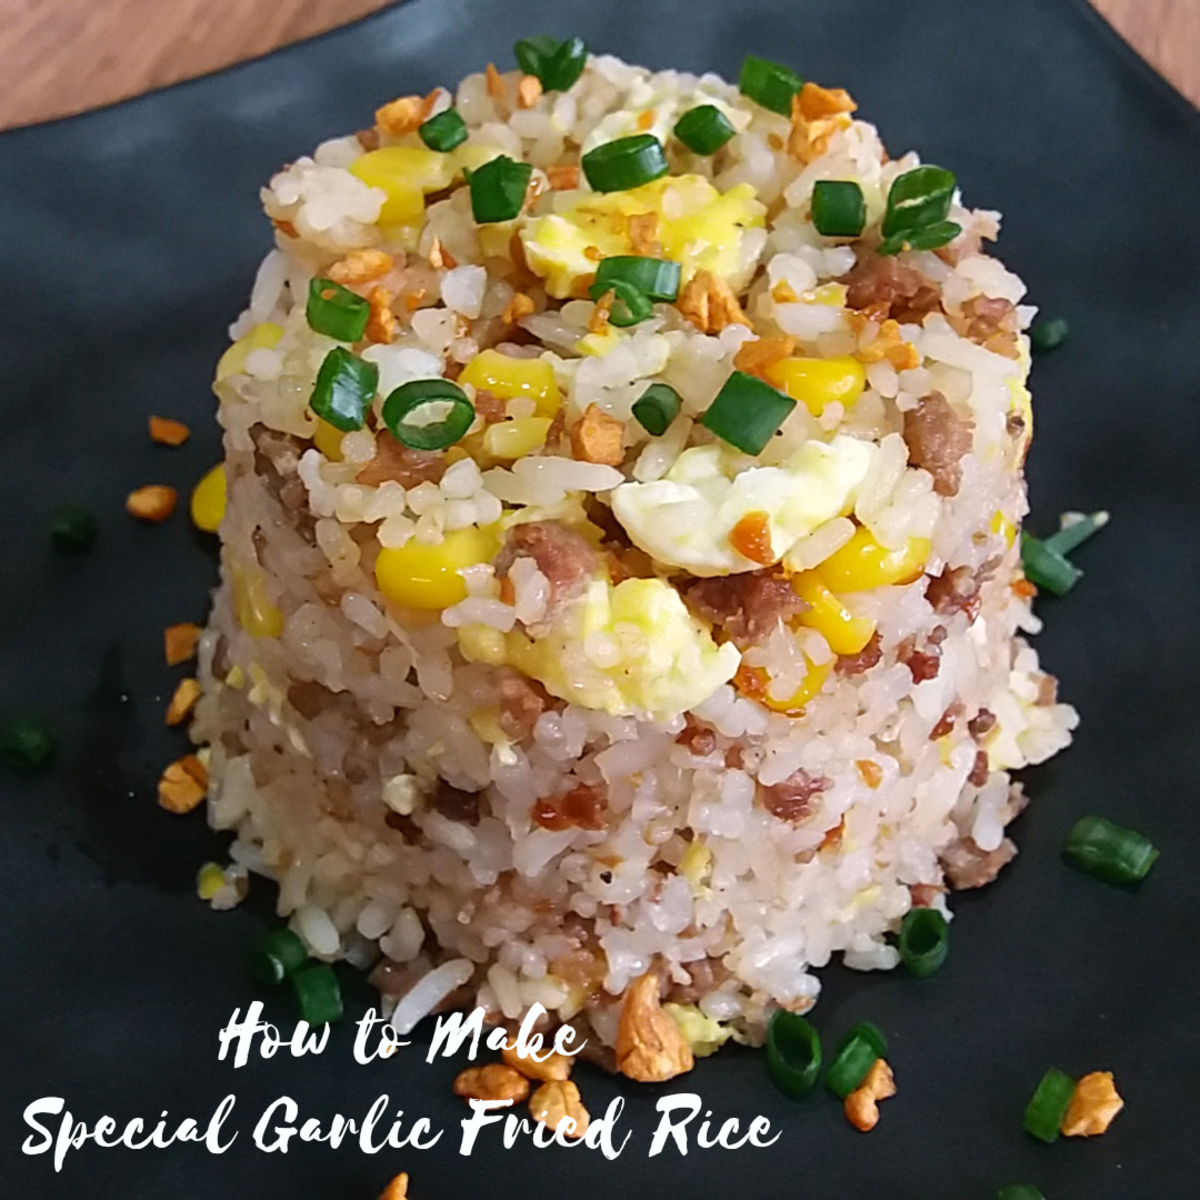 How to Make Special Garlic Fried Rice